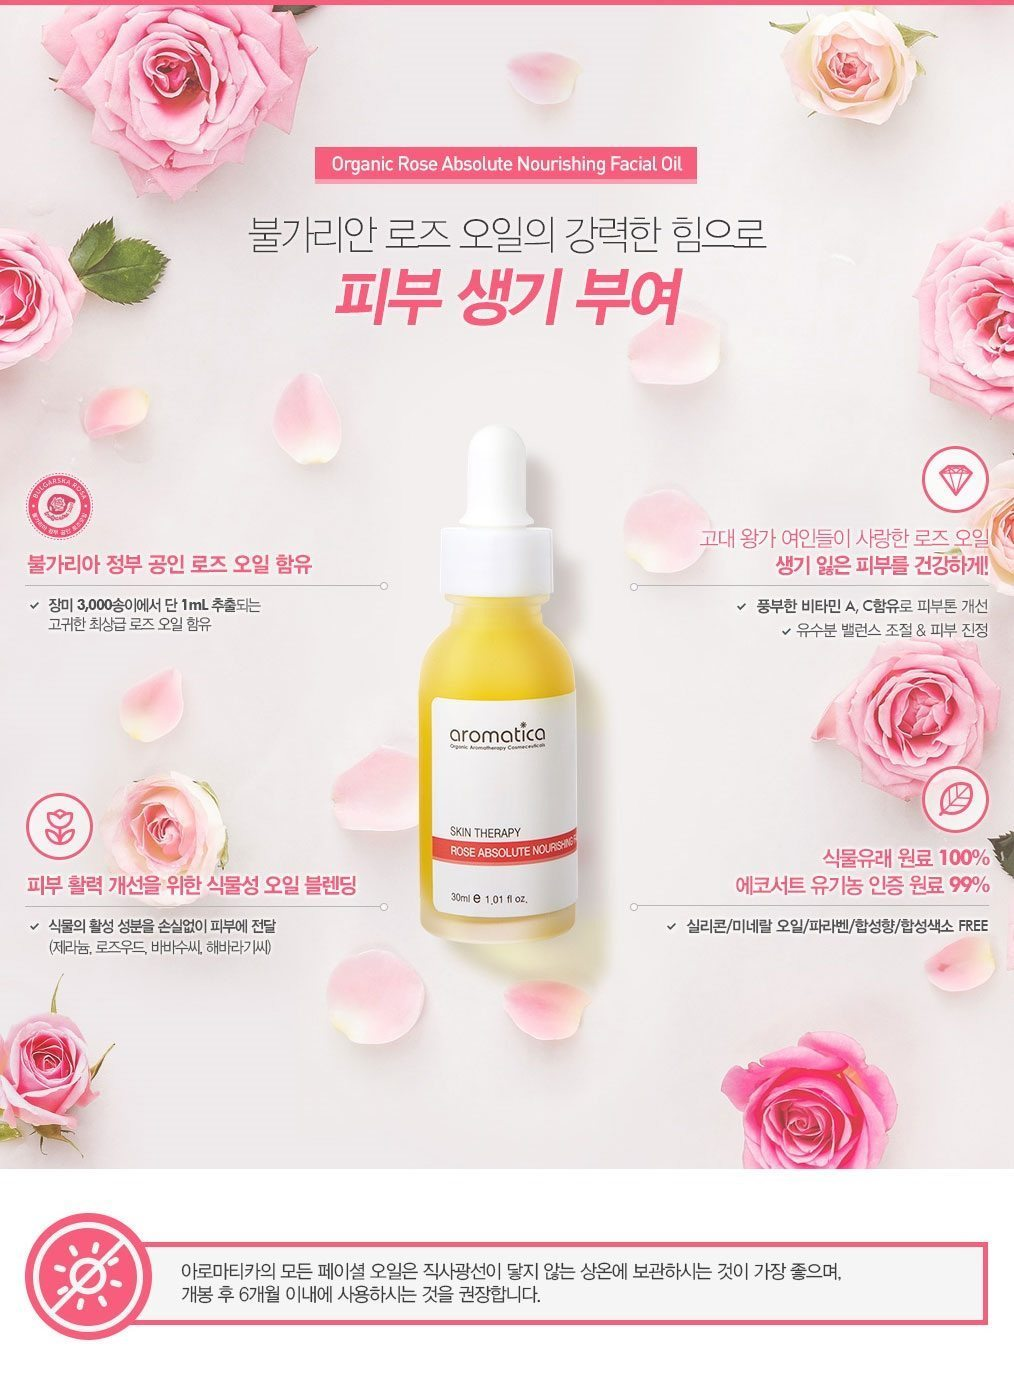 Aromatica Organic Rose Absolute Nourishing Facial Oil korean cosmetic skincare product online shop malaysia china japan2